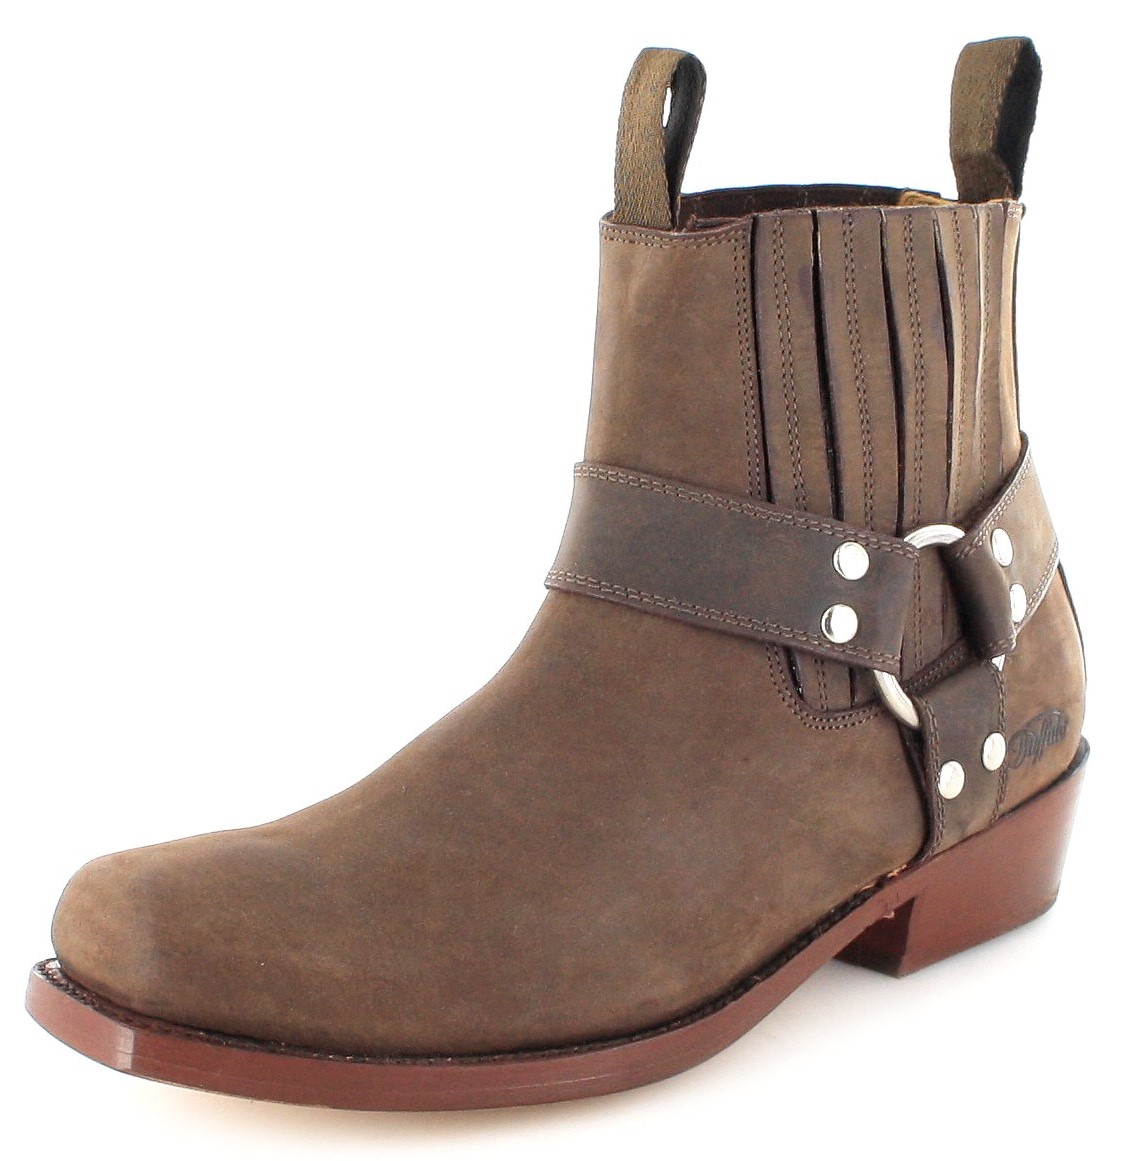 Buffalo Boots 6000 biker ankle boot - brown